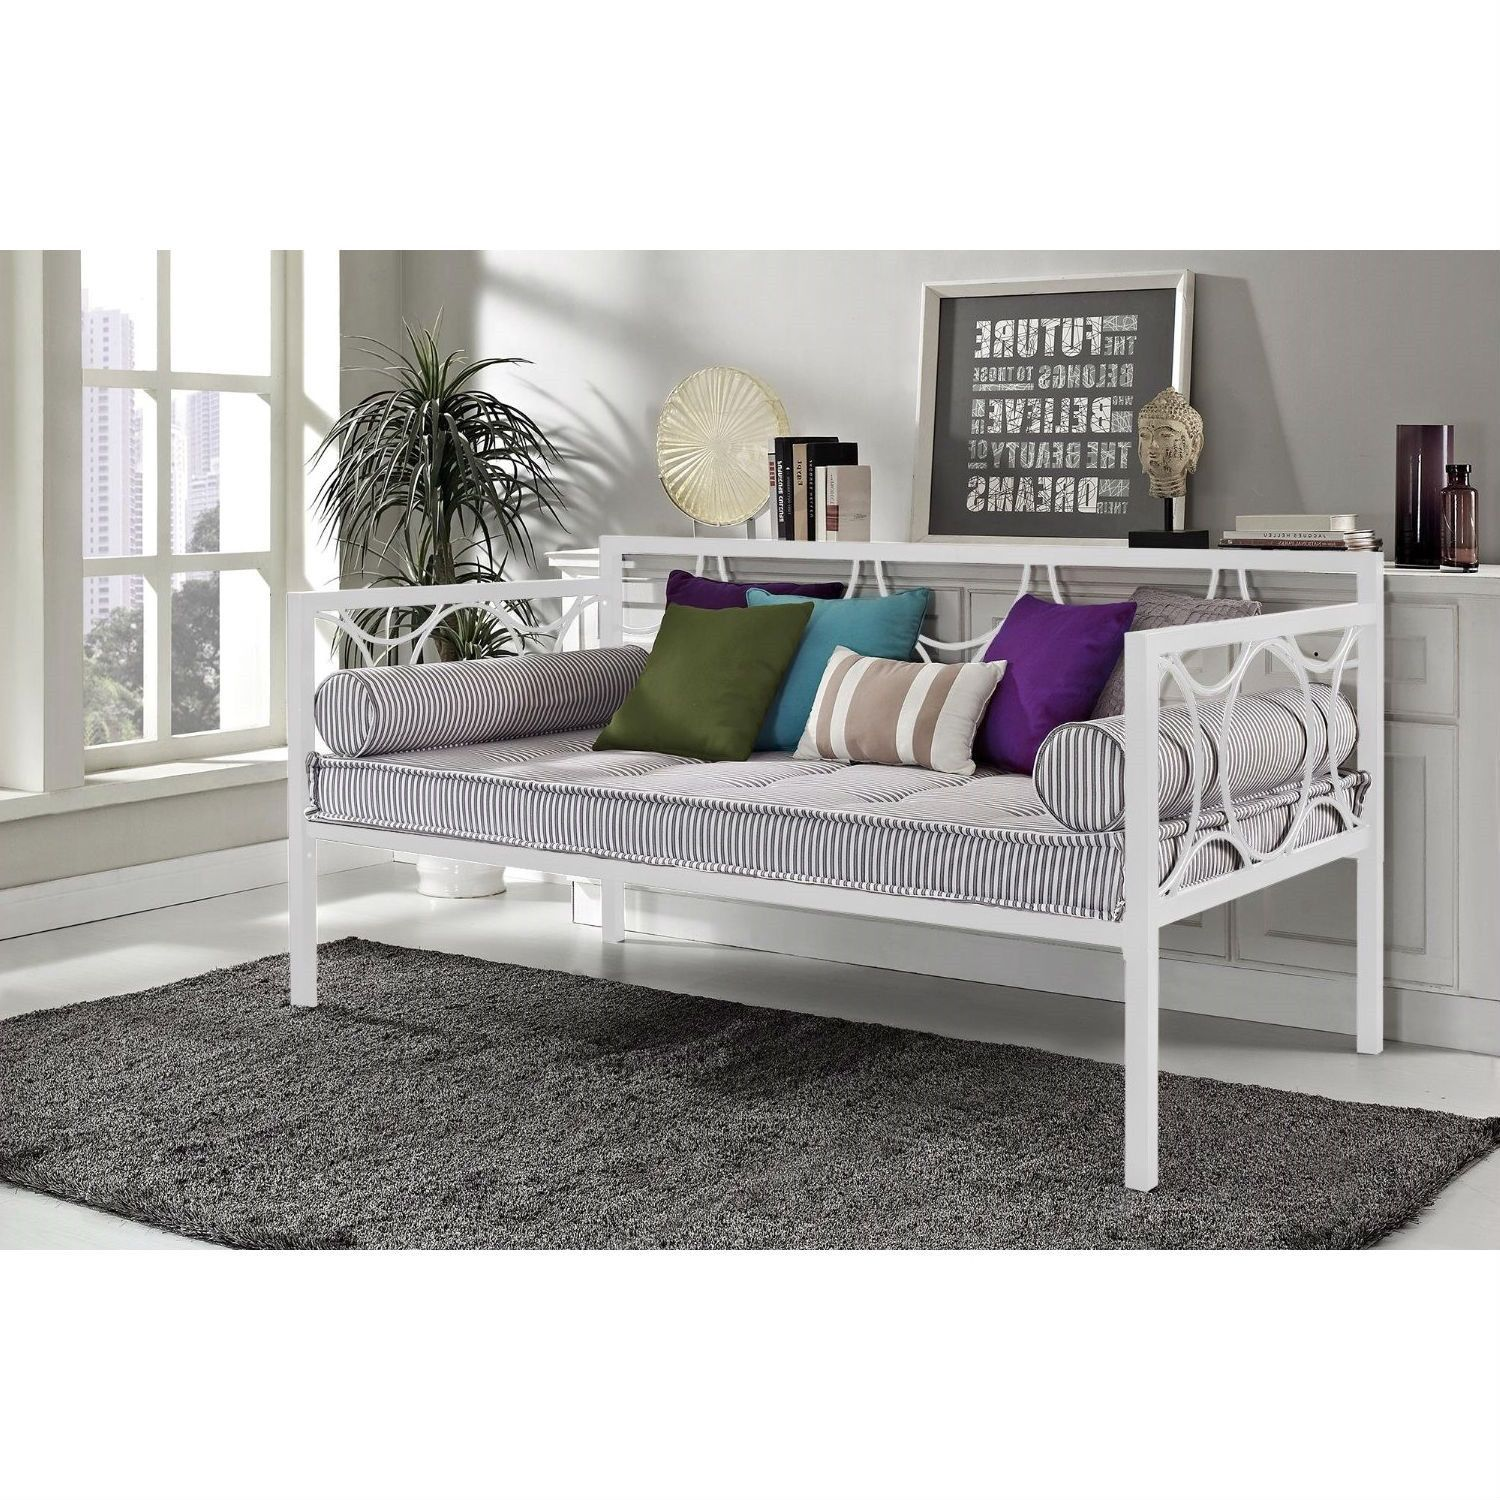 Twin size Modern White Metal Daybed with Circular Motifs